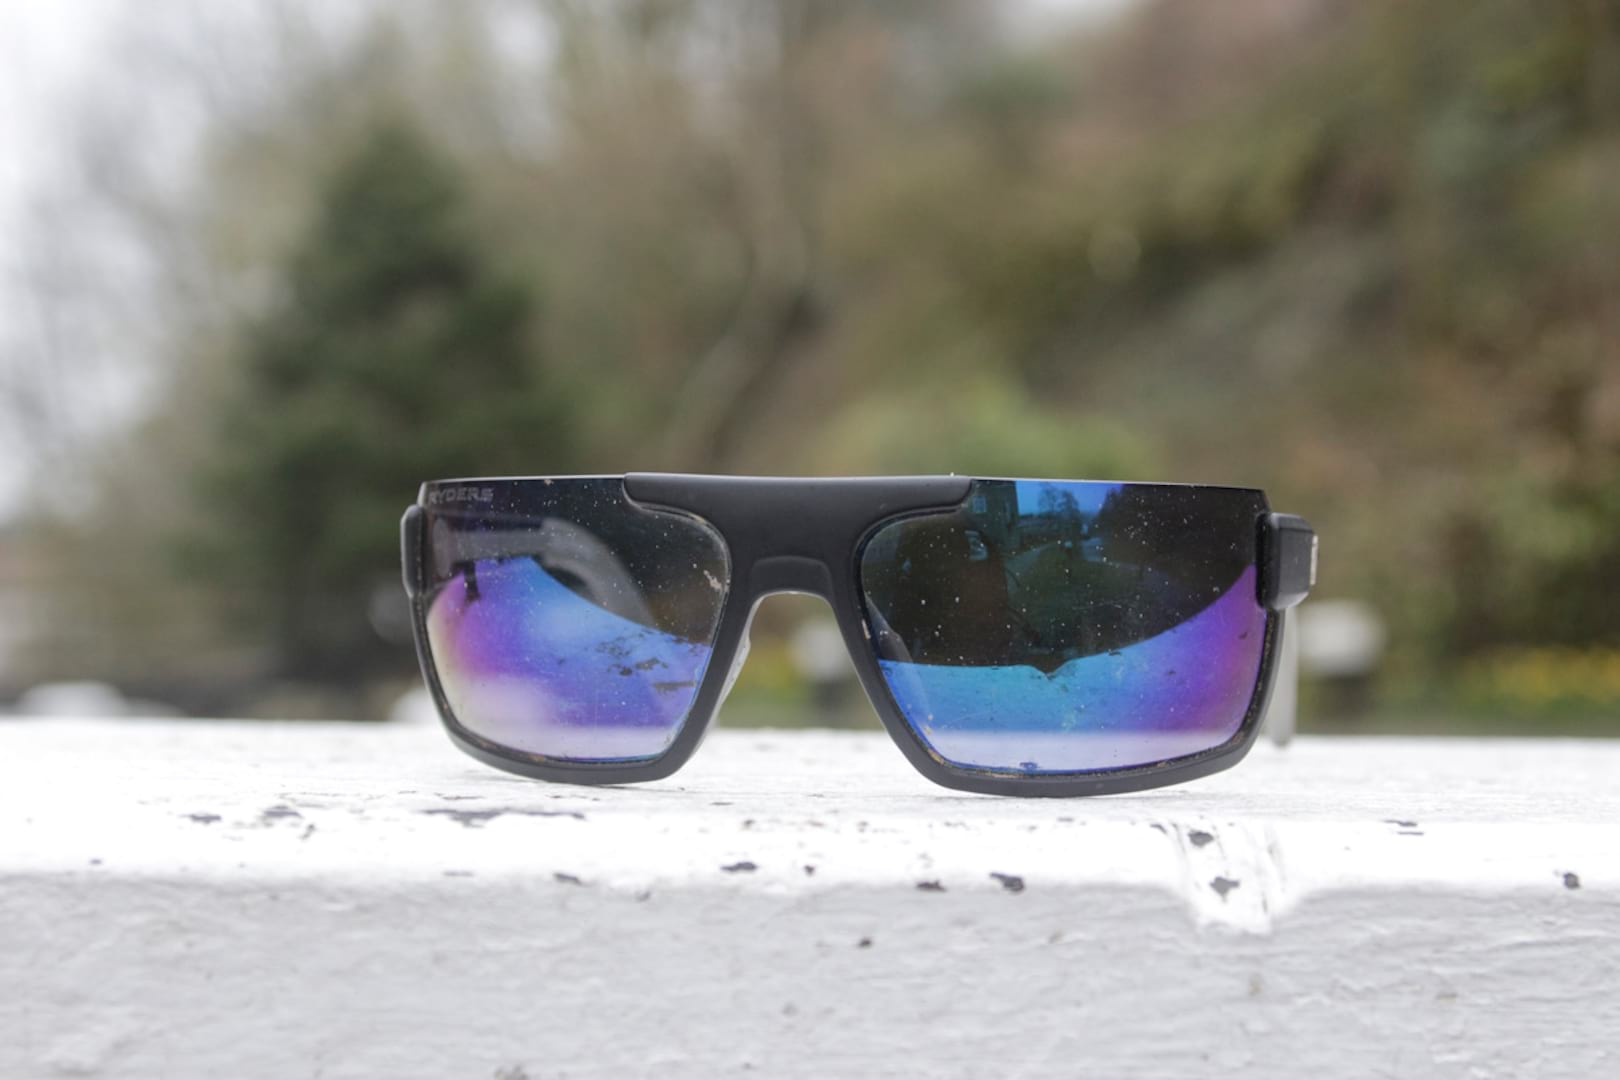 b3206234889 Review  These Incline glasses from Ryders Eyewear have an unusual shape